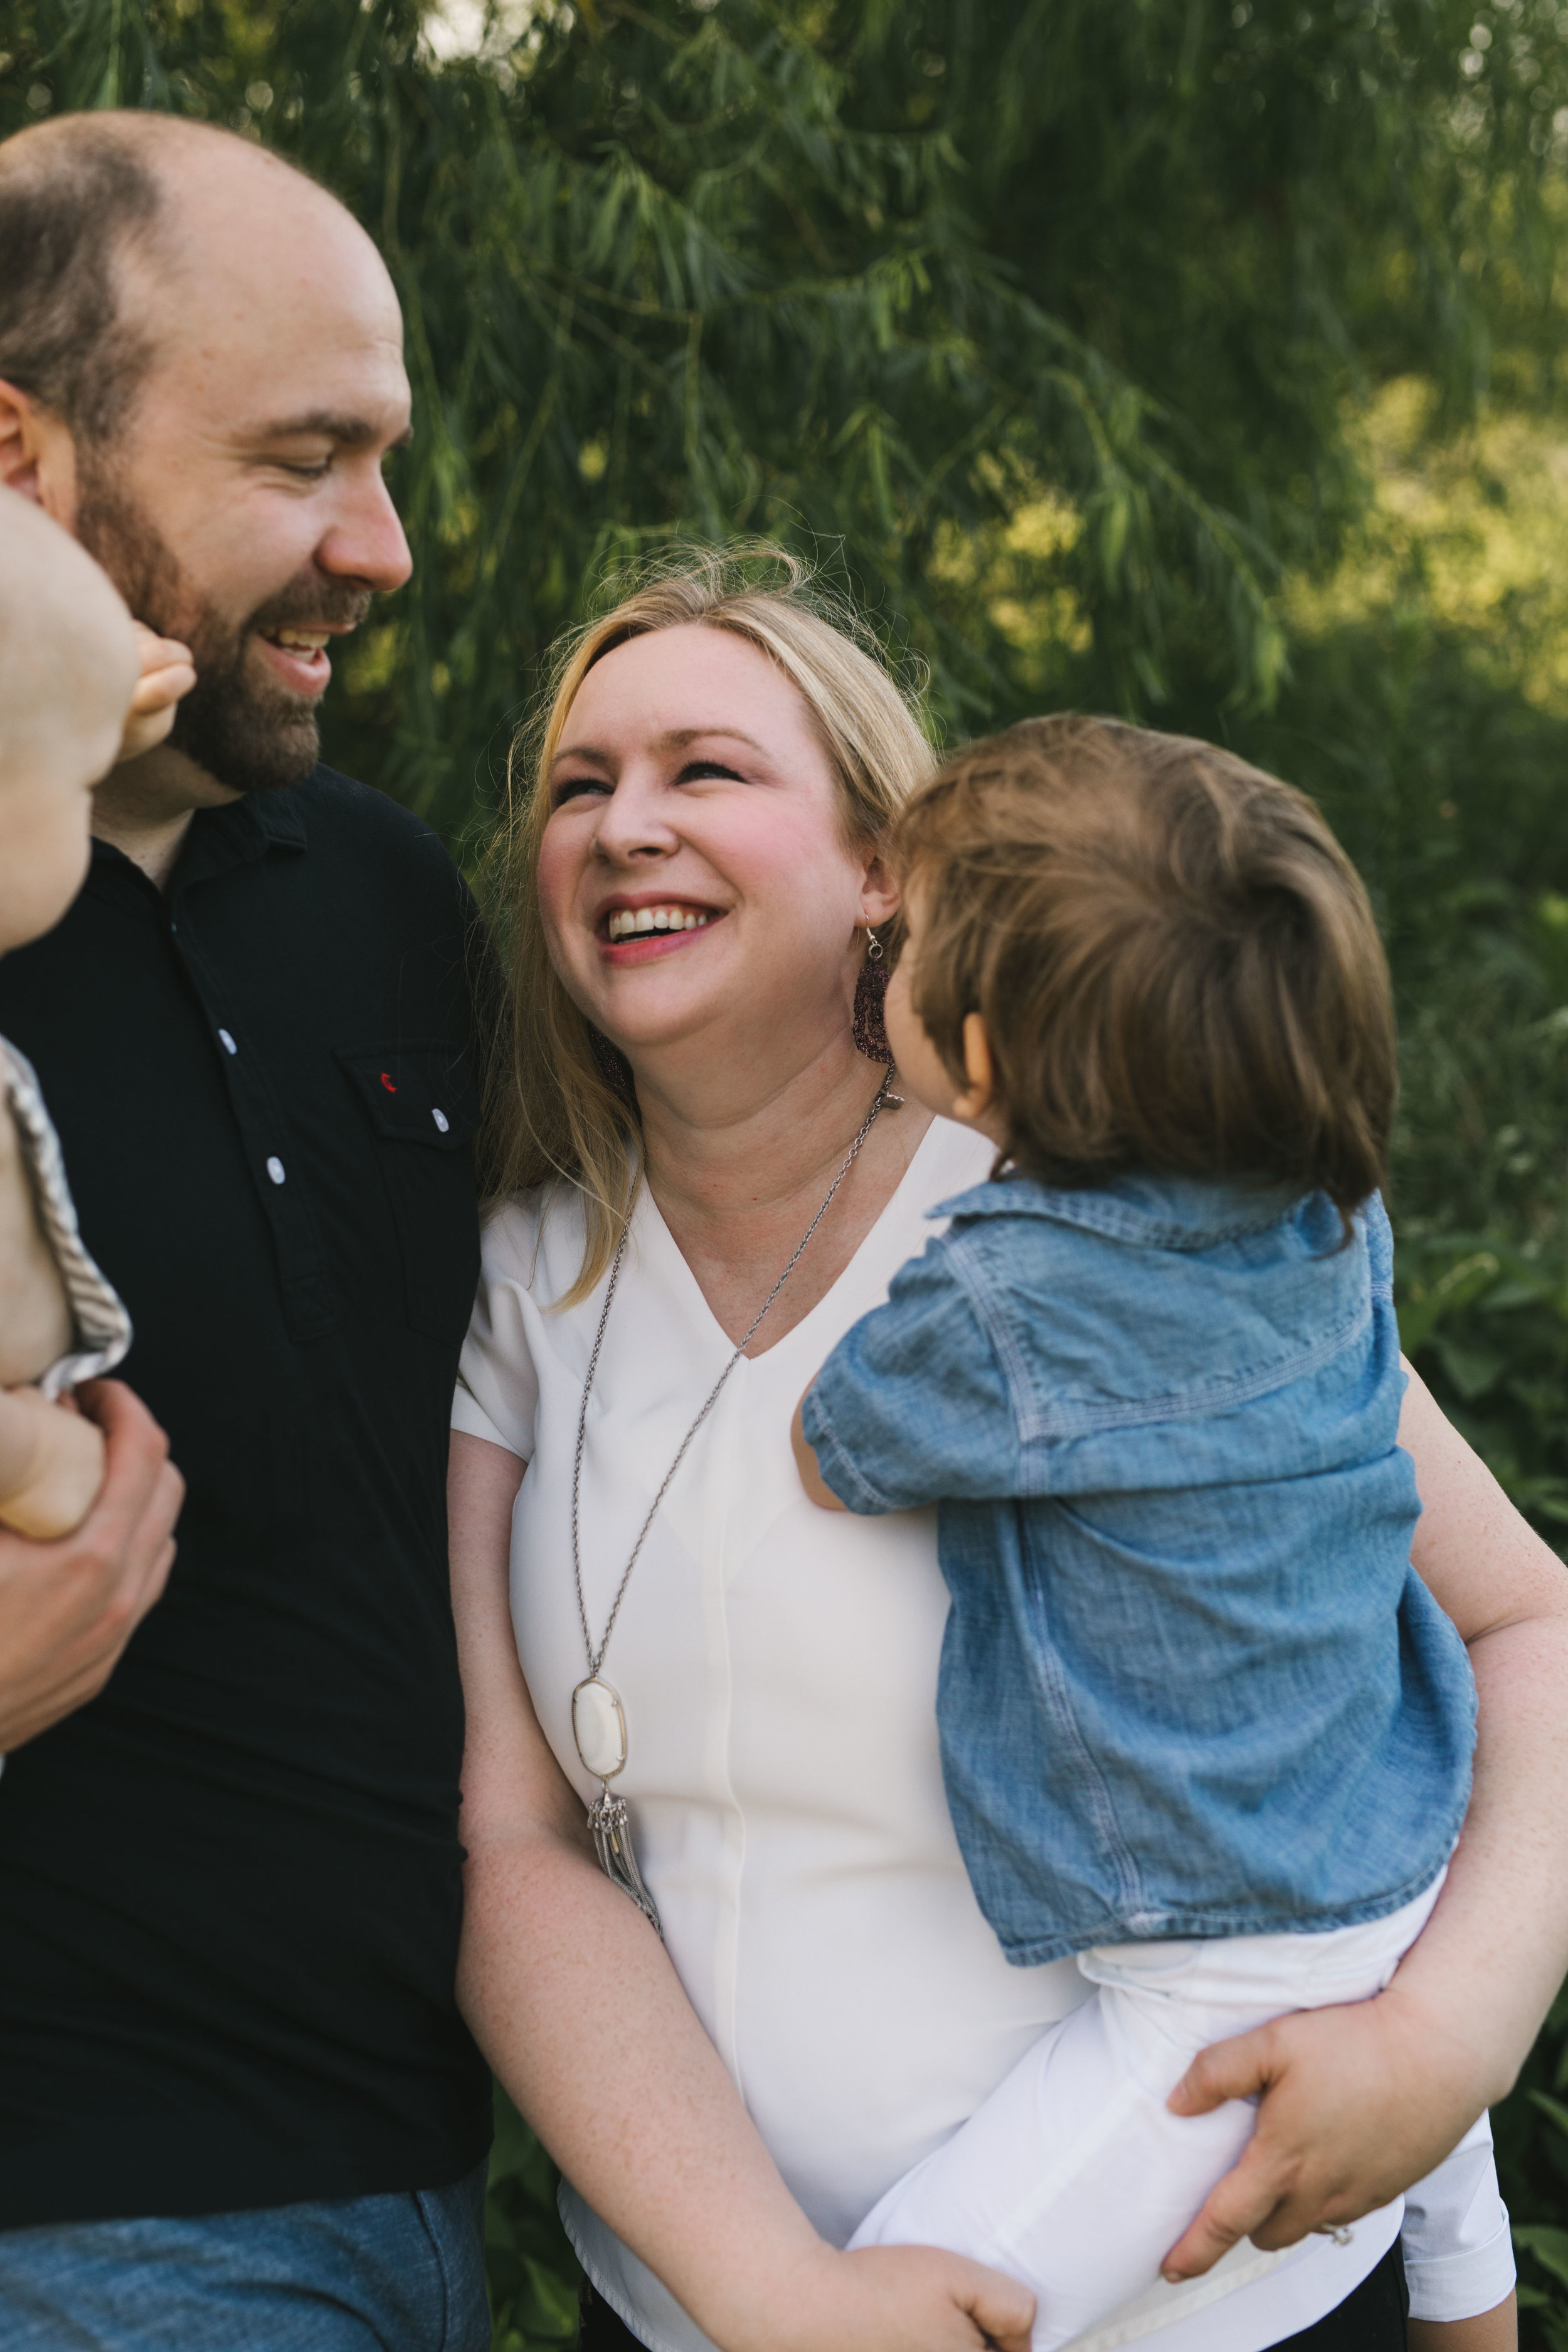 Dallas family session in-home and on a walk around the neighborhood with sweet family of four by Seattle family photographer Chelsea Macor Photography-14.jpg